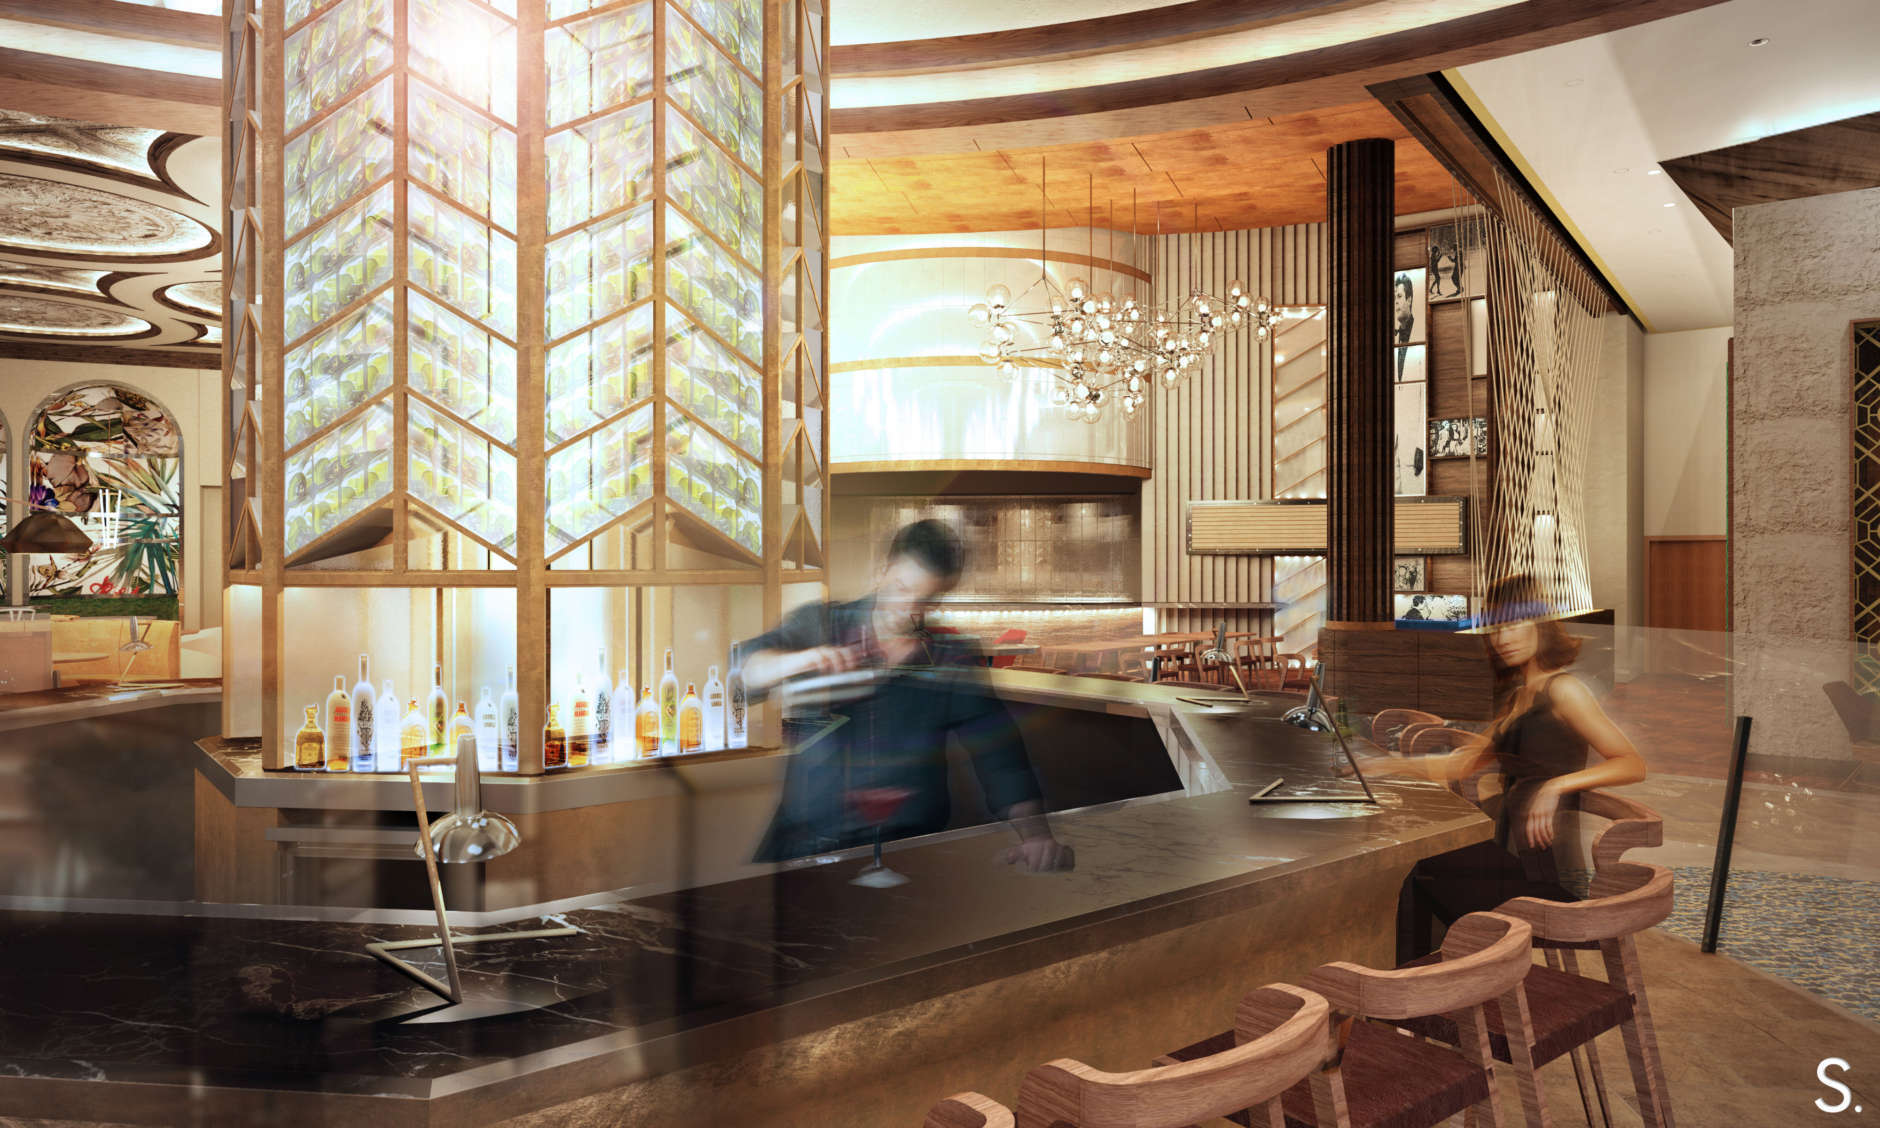 The new Octagon Bar, a prohibition-style mixology bar, will serve old classic-style cocktails. (Rendering courtesy Mike Isabella Concepts/Streetsense)